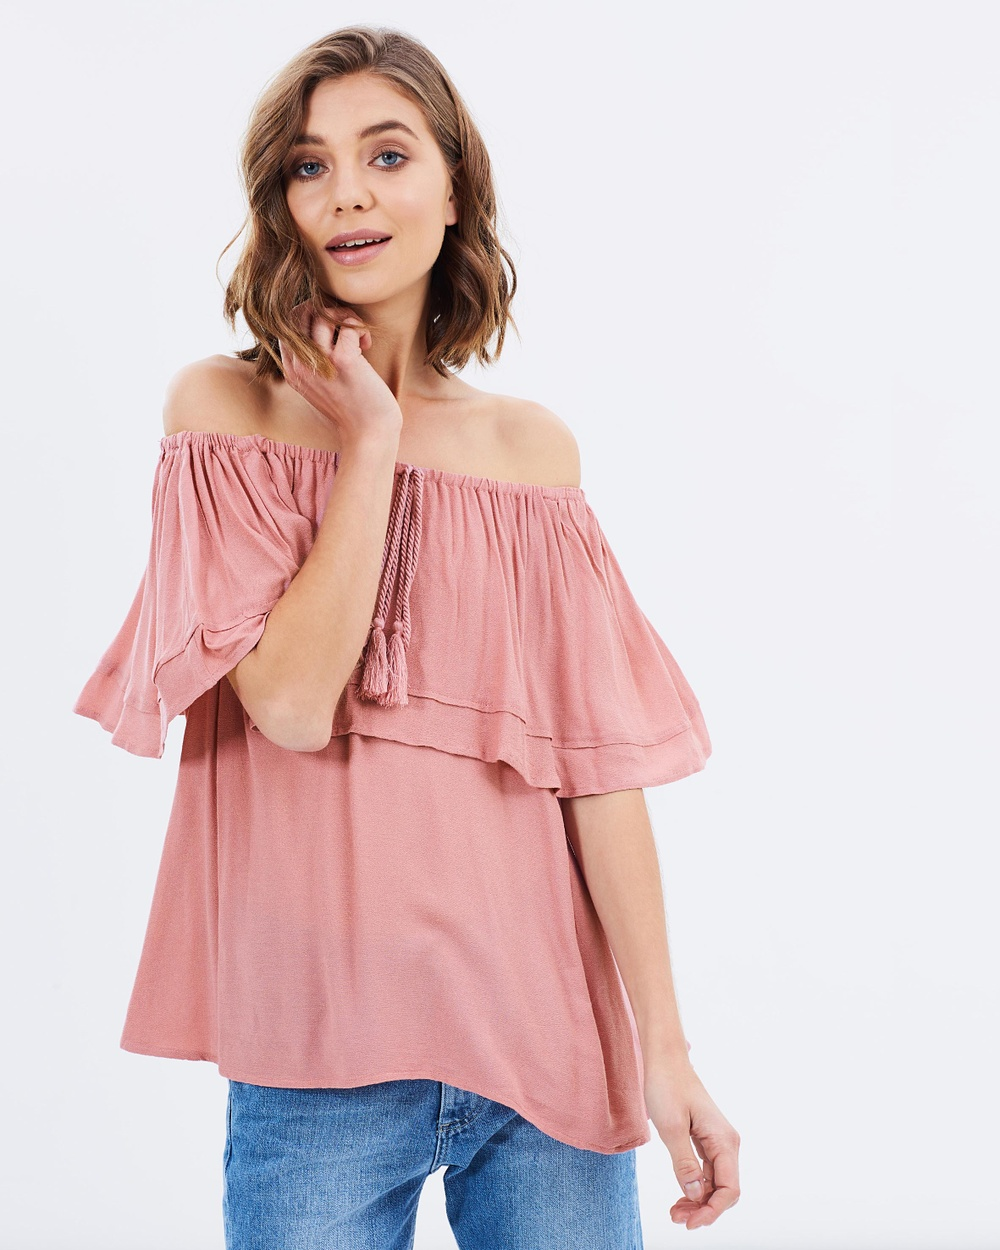 Sass Ellis Ruffle Off Shoulder Top Tops Lotus Ellis Ruffle Off Shoulder Top